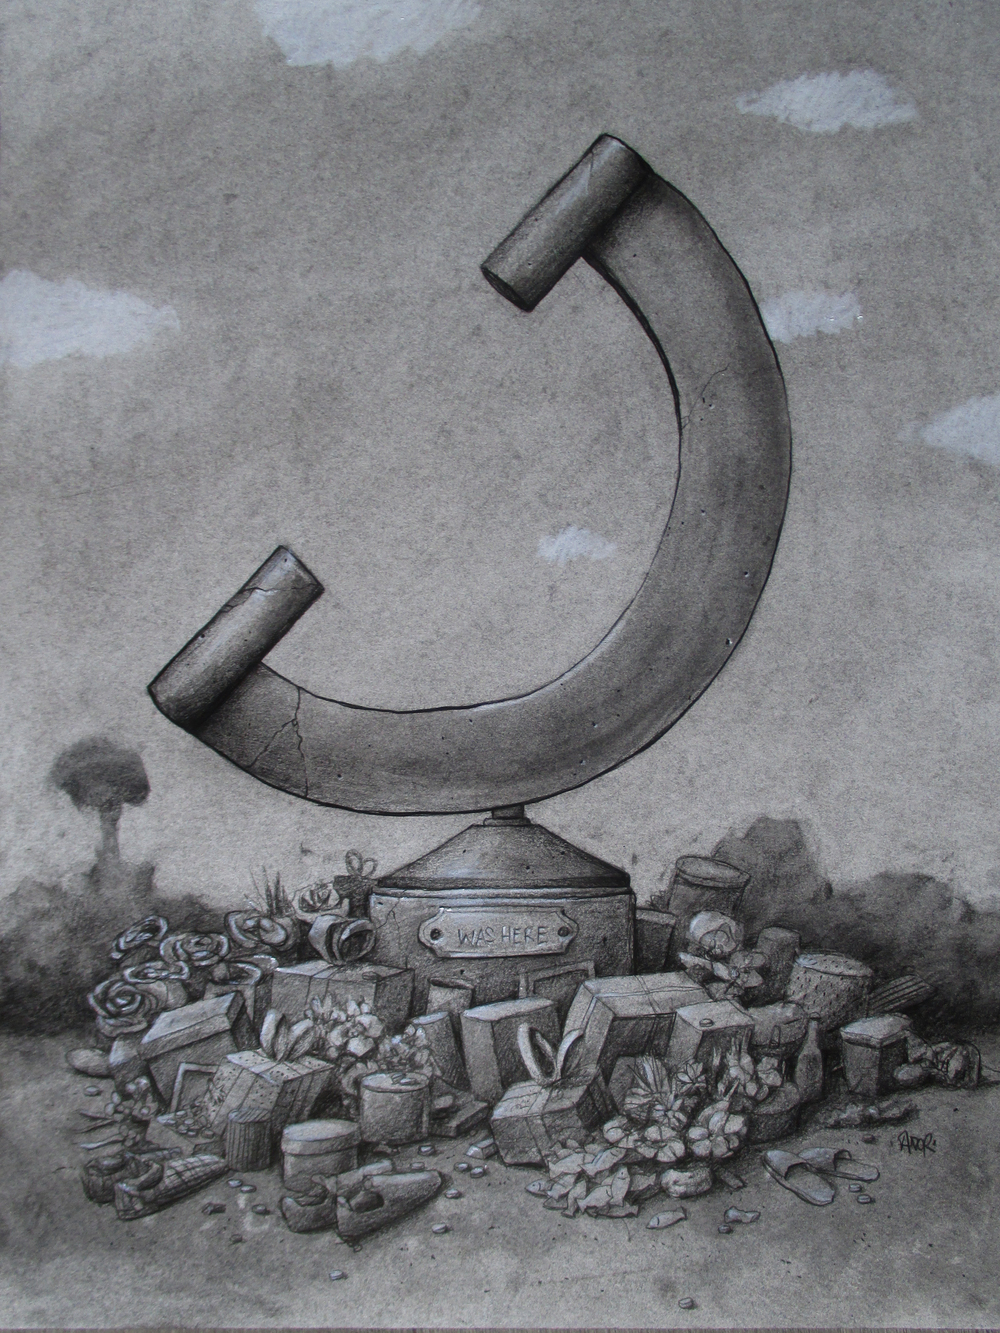 "'Was here', 2014, graphite on paper, 16"" x 12"""